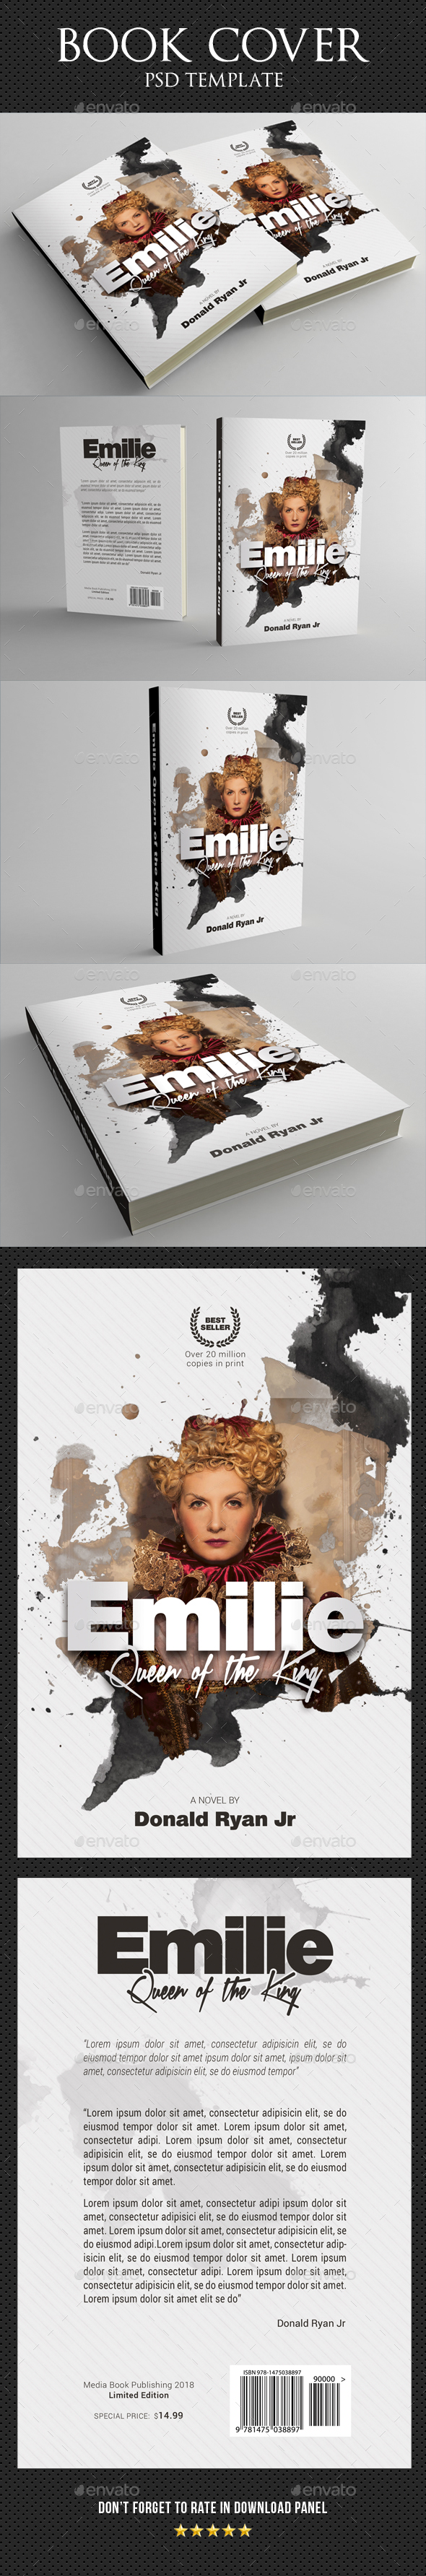 Book Cover Template 50 - Miscellaneous Print Templates